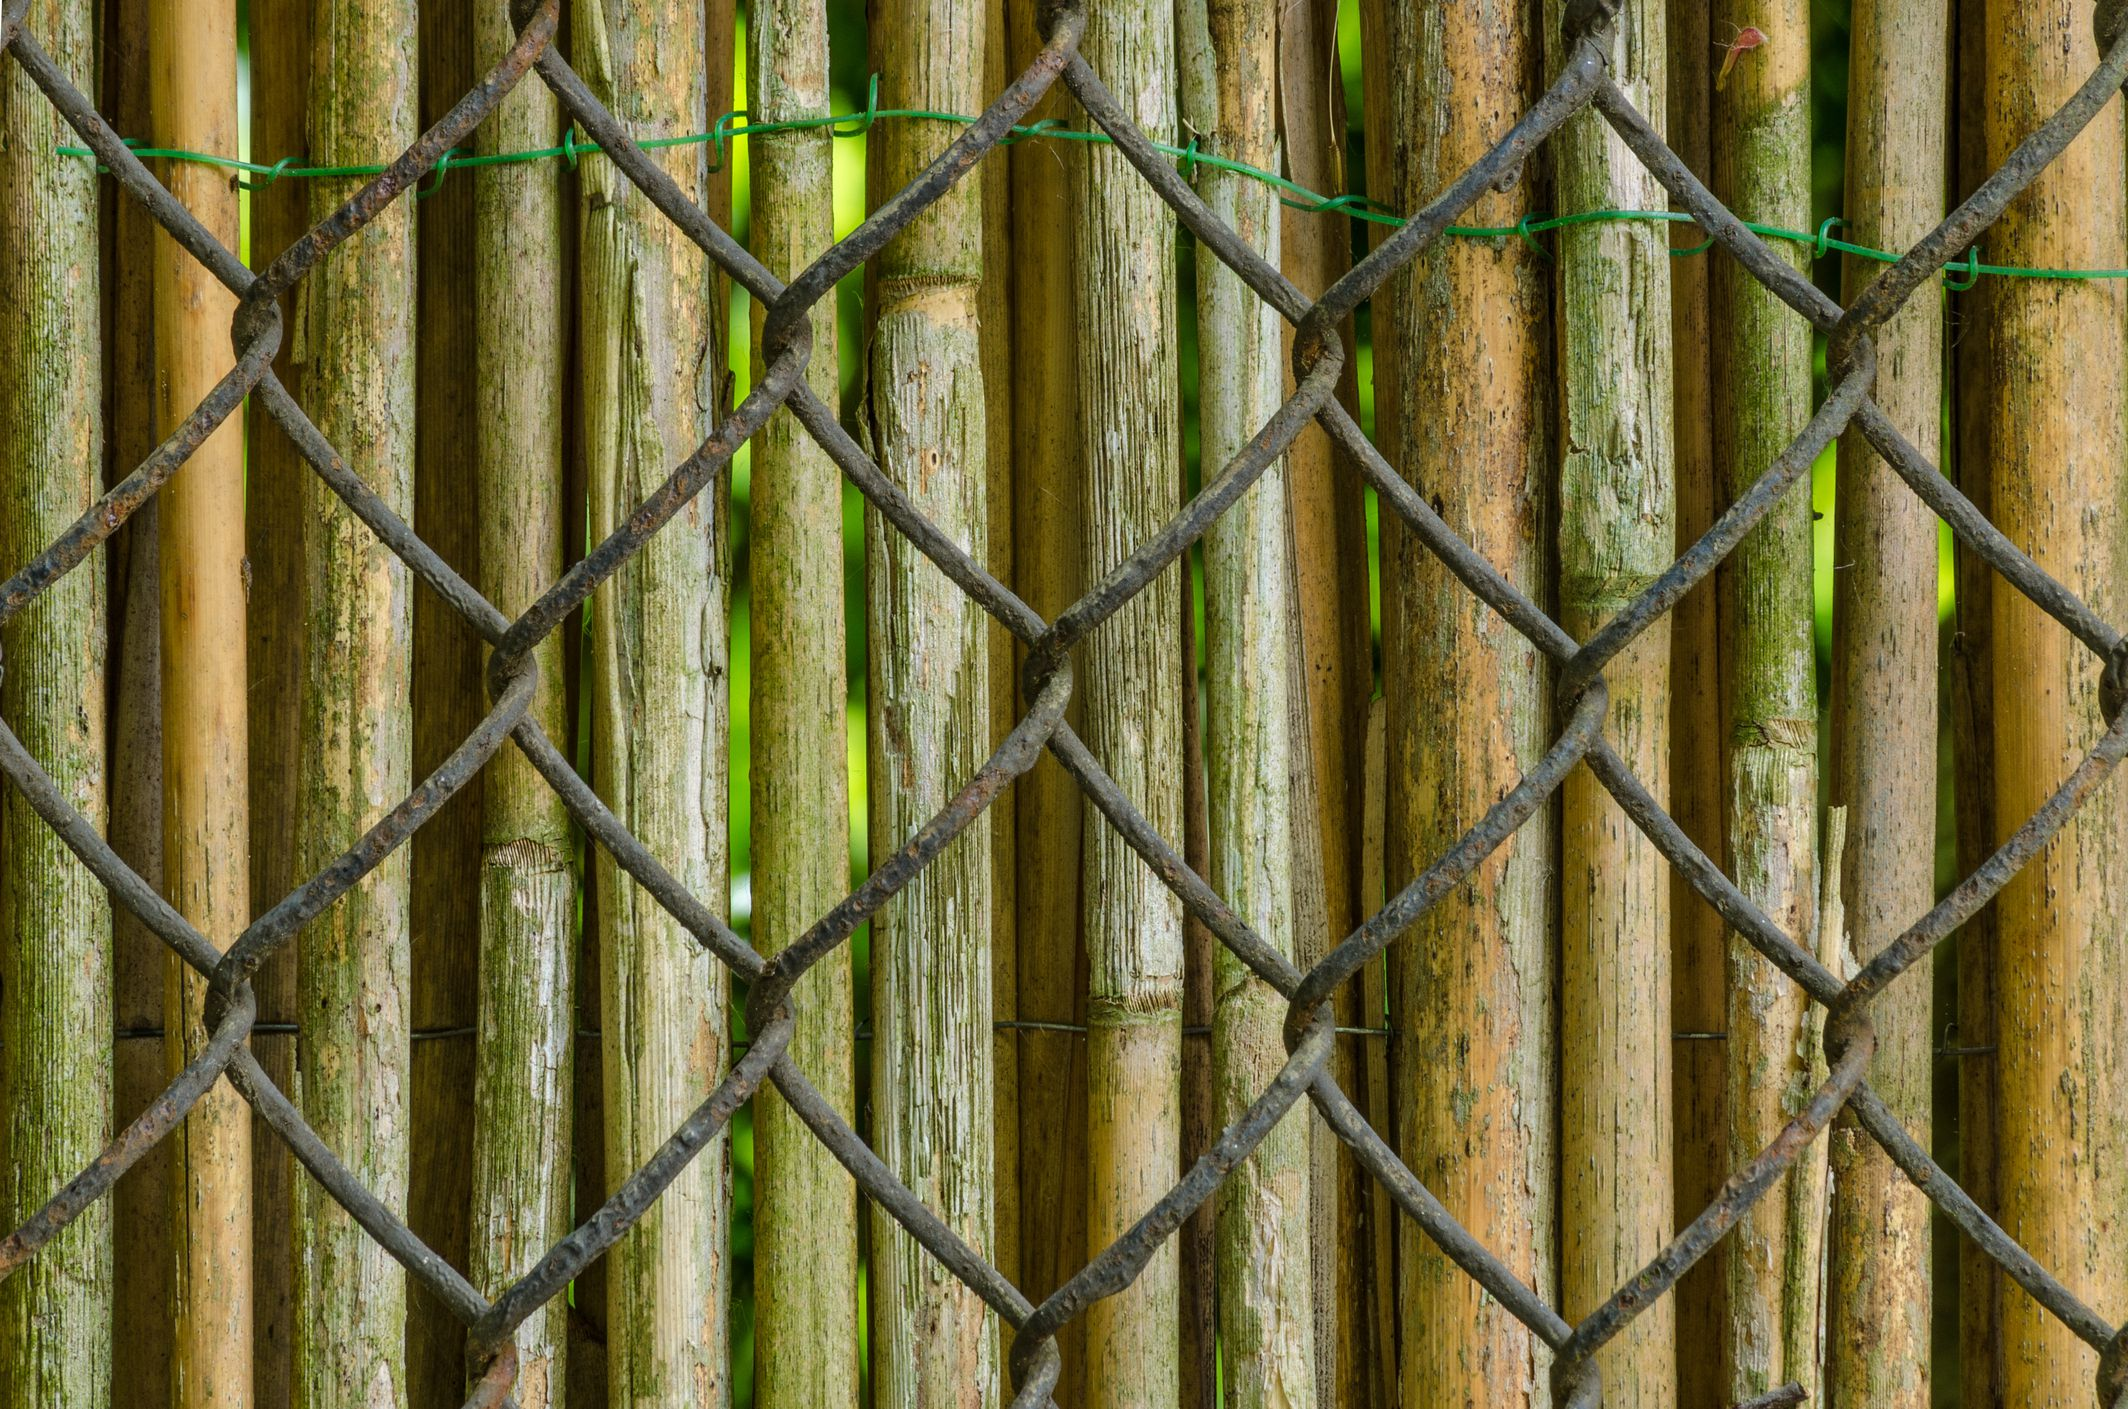 5 ways to cover up a chain link fence